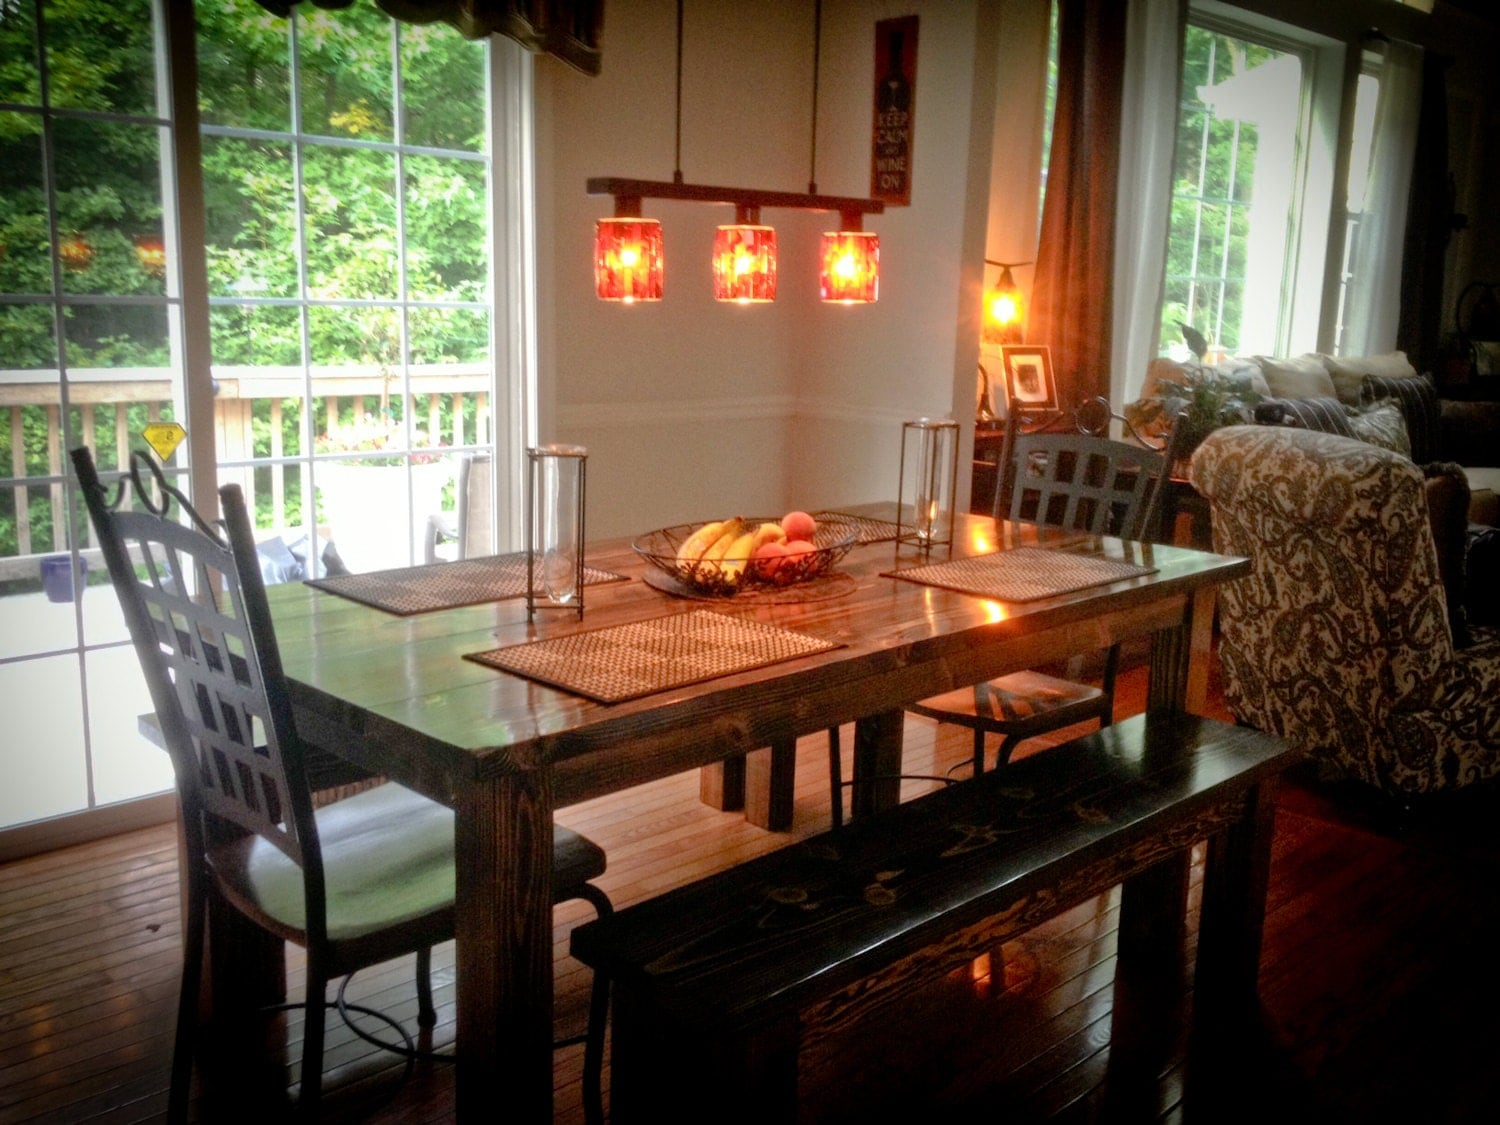 similar to 6ft farmhouse style kitchen dining room table on etsy